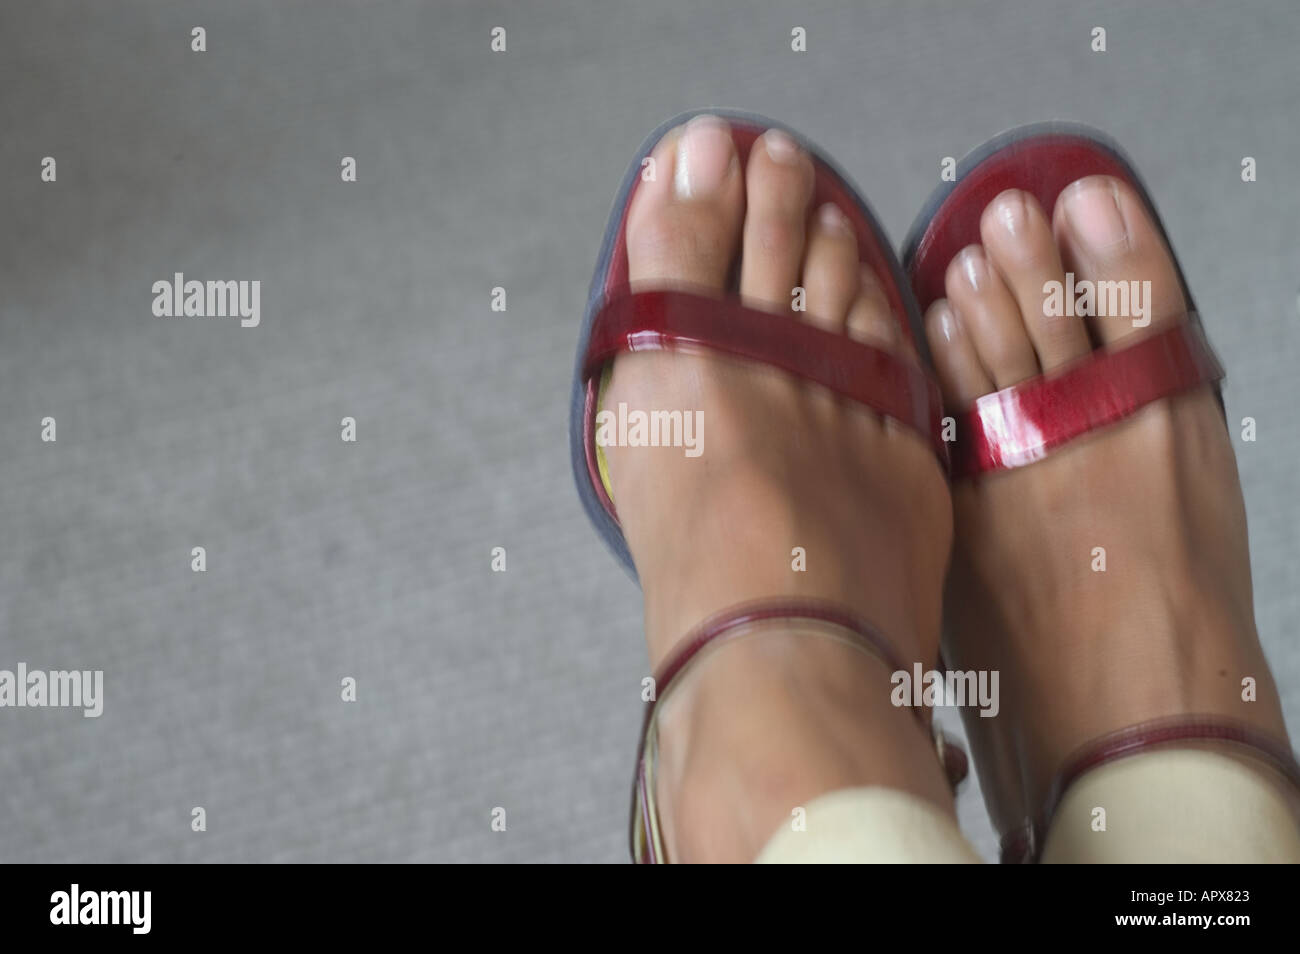 feet in red strappy sandals Stock Photo